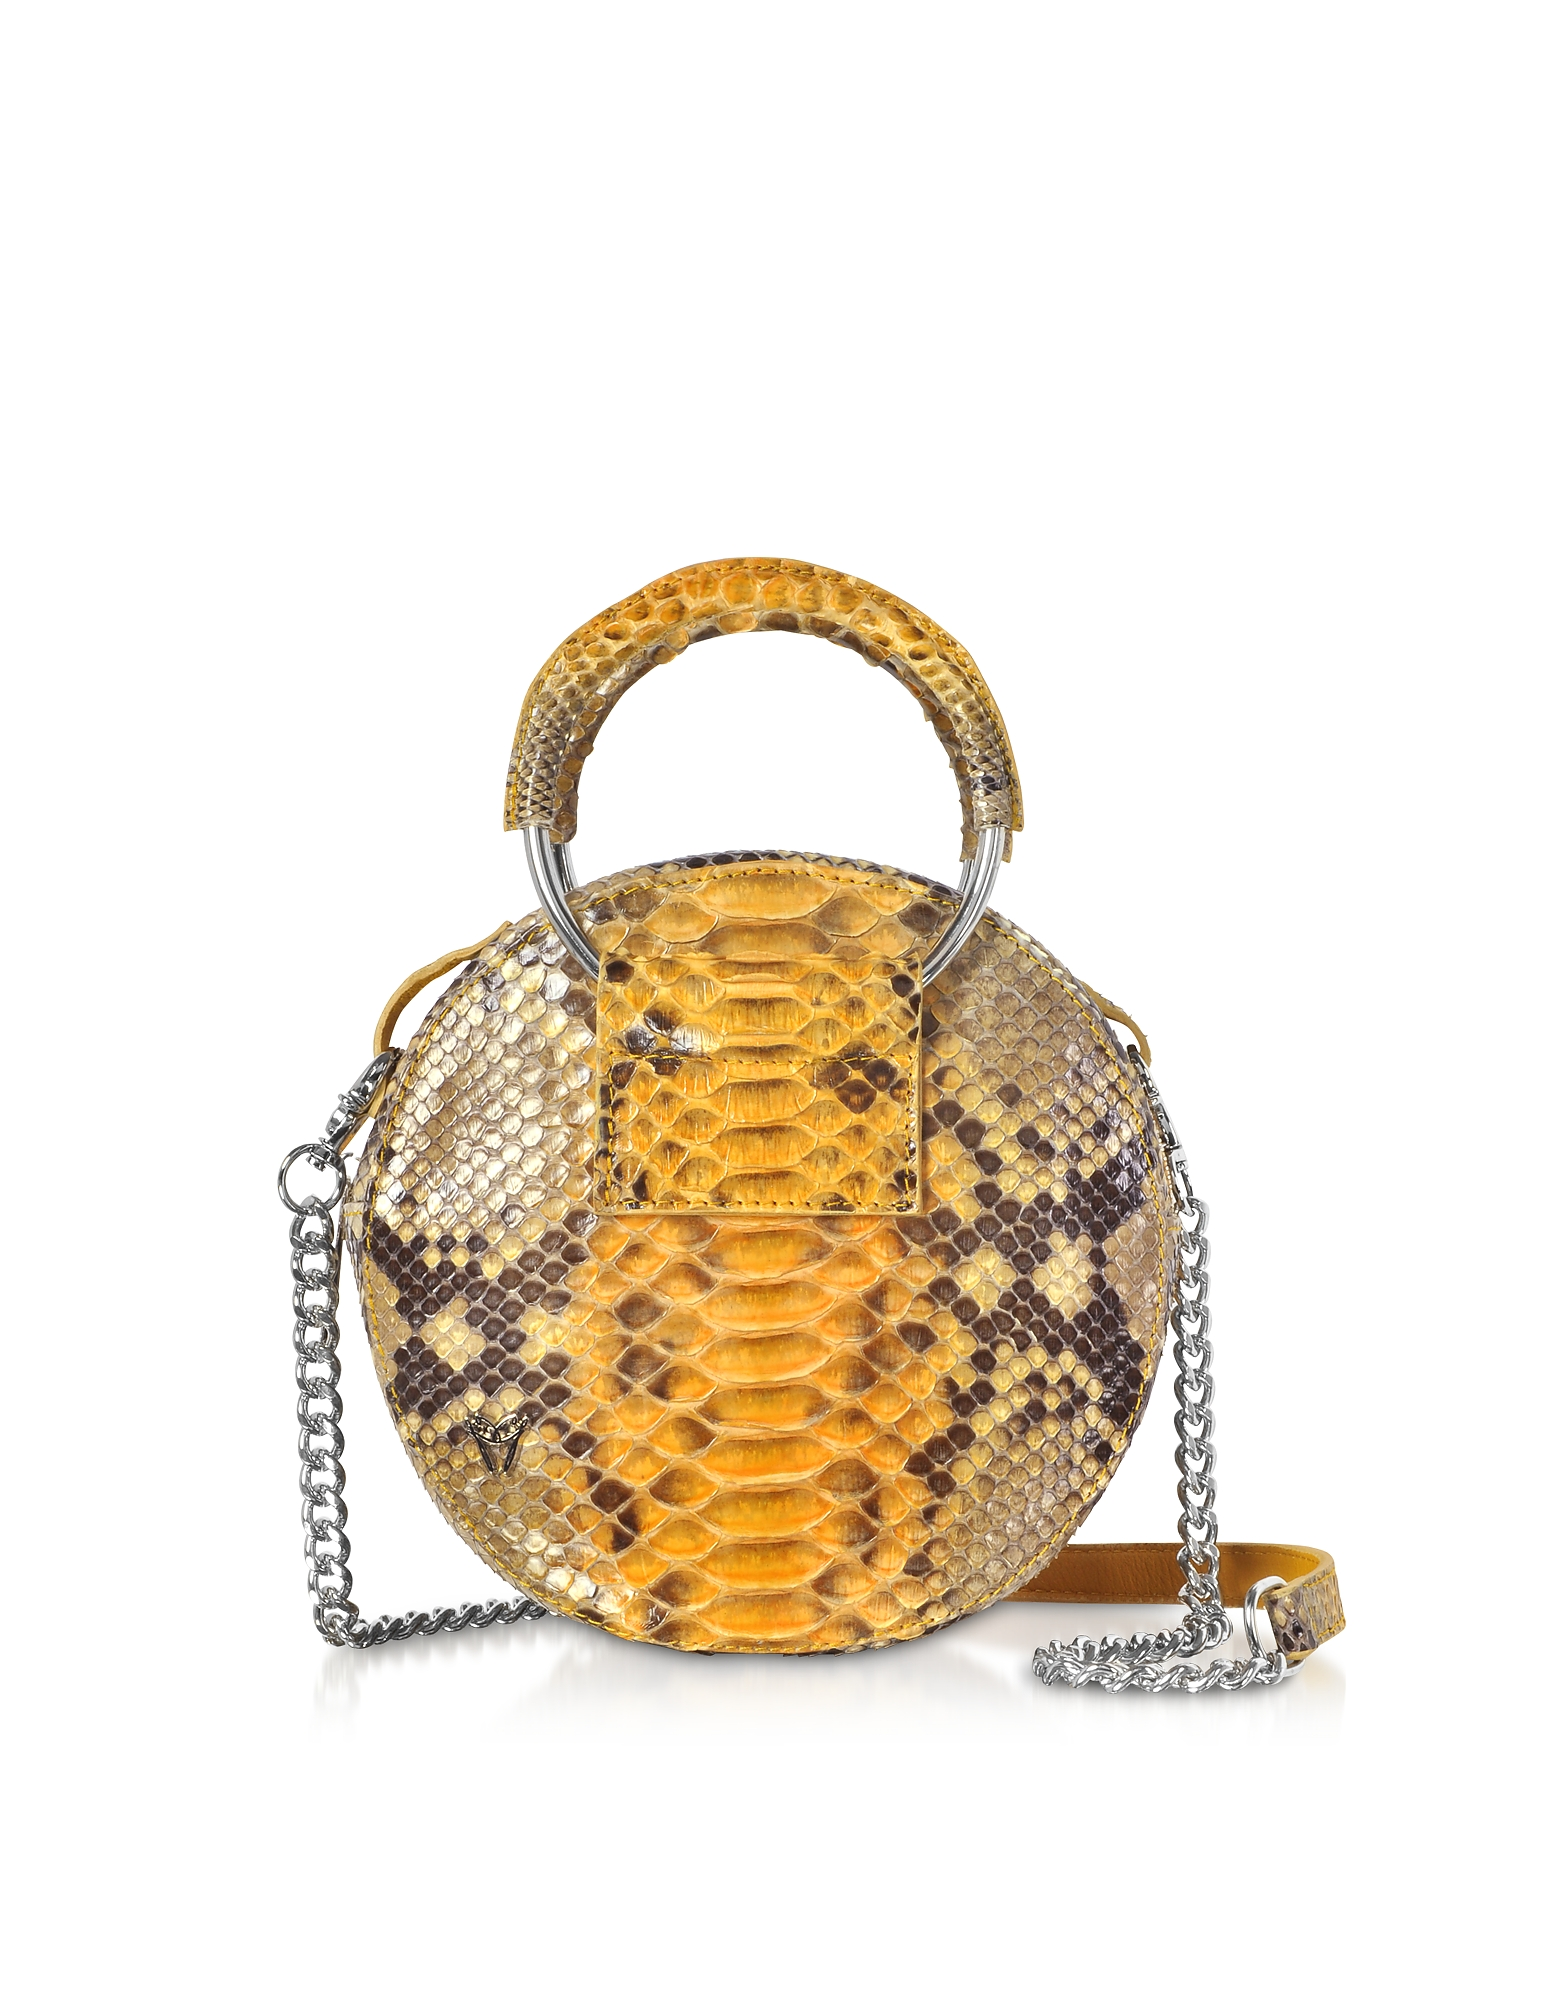 Saffron Yellow Python Round Crossbody Bag w/Metal Handles